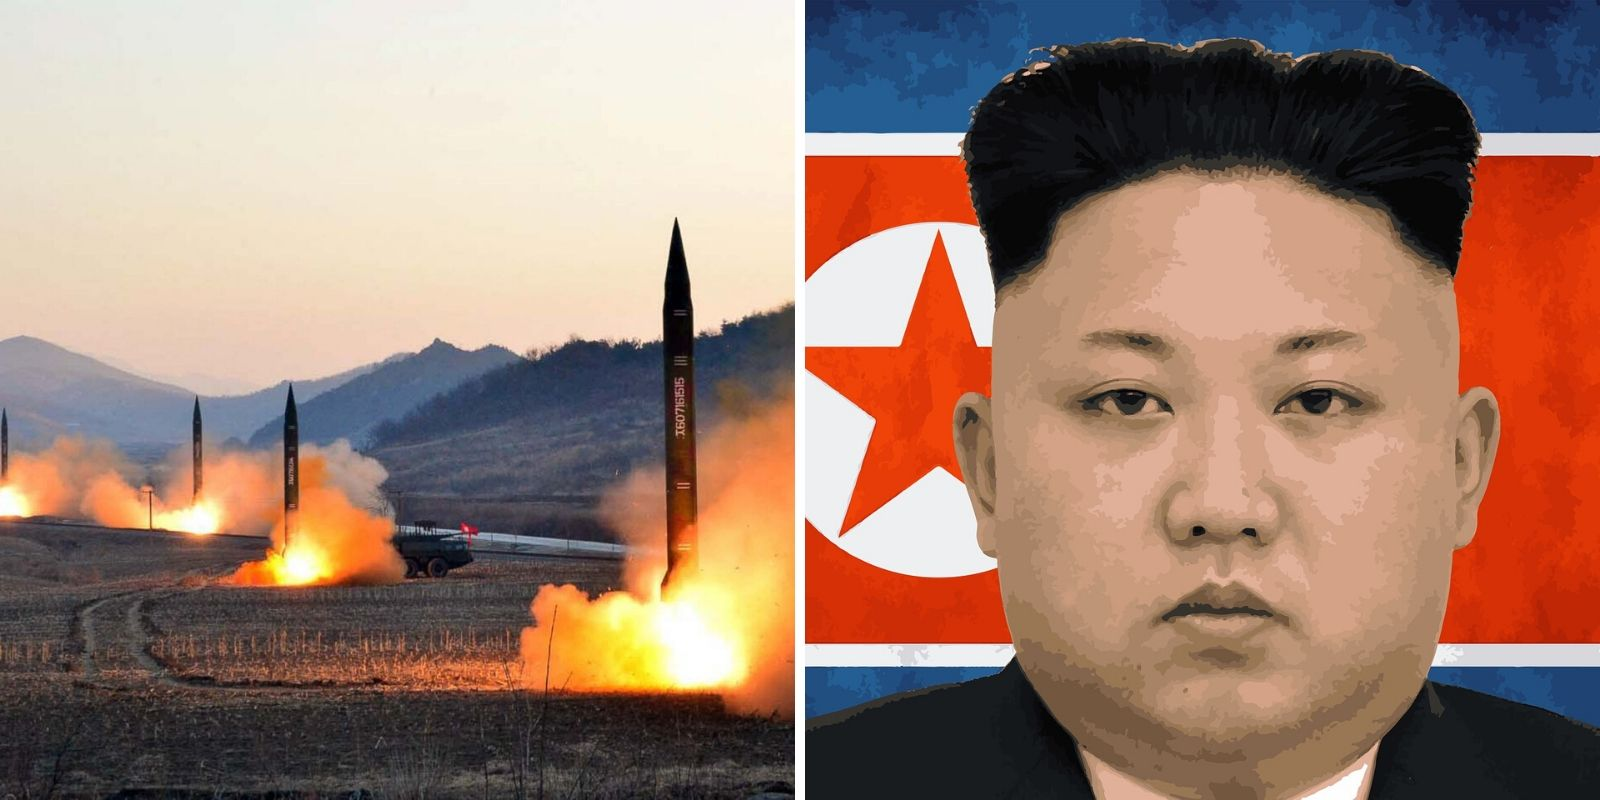 North Korea says it has successfully tested new 'super-large multiple rocket launcher'